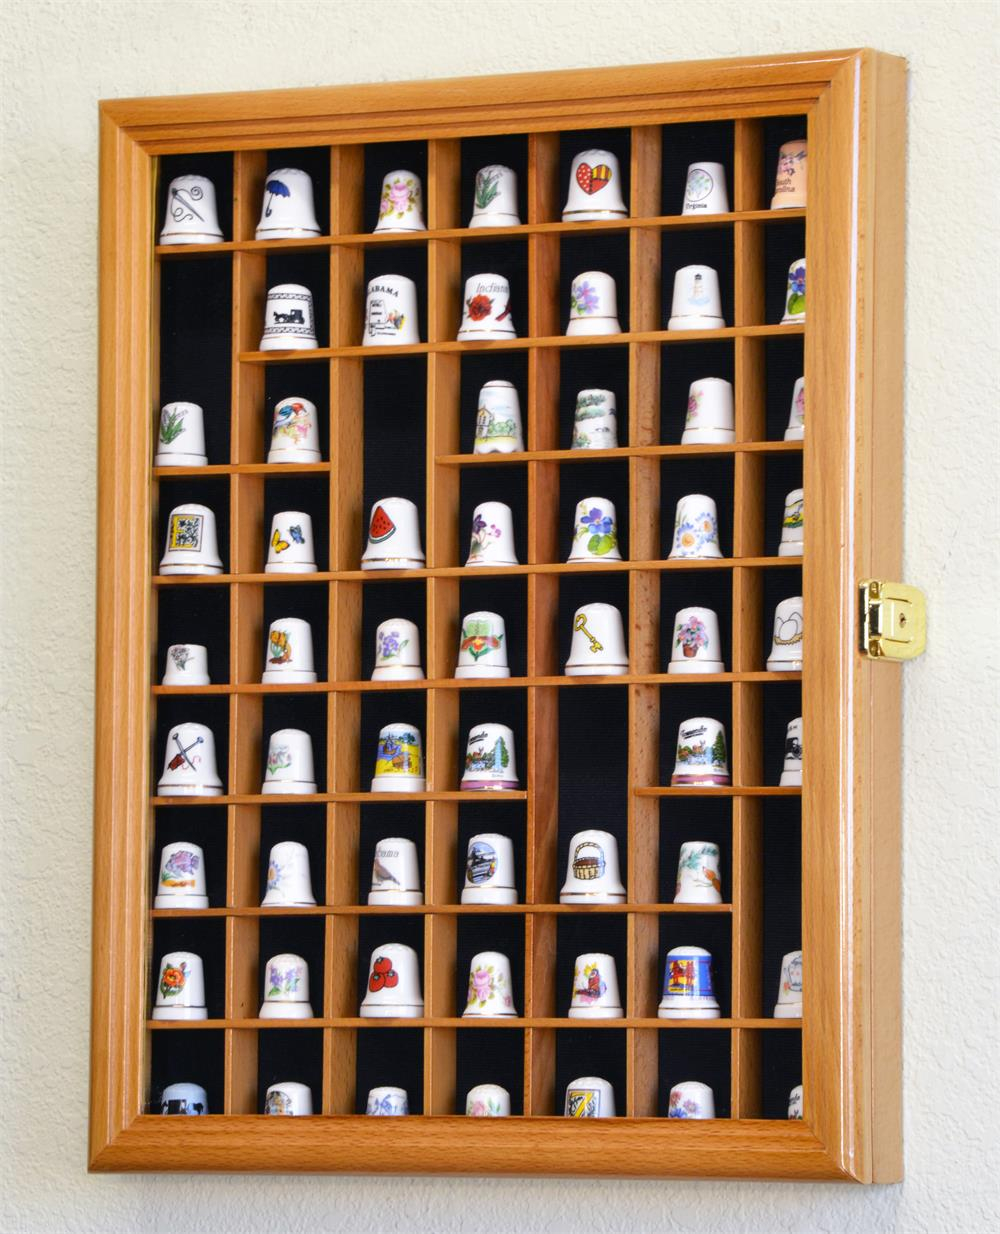 Thimble Display Case Thimble Display Rack Souvenir Thimble Display Within  Proportions 1000 X 1234